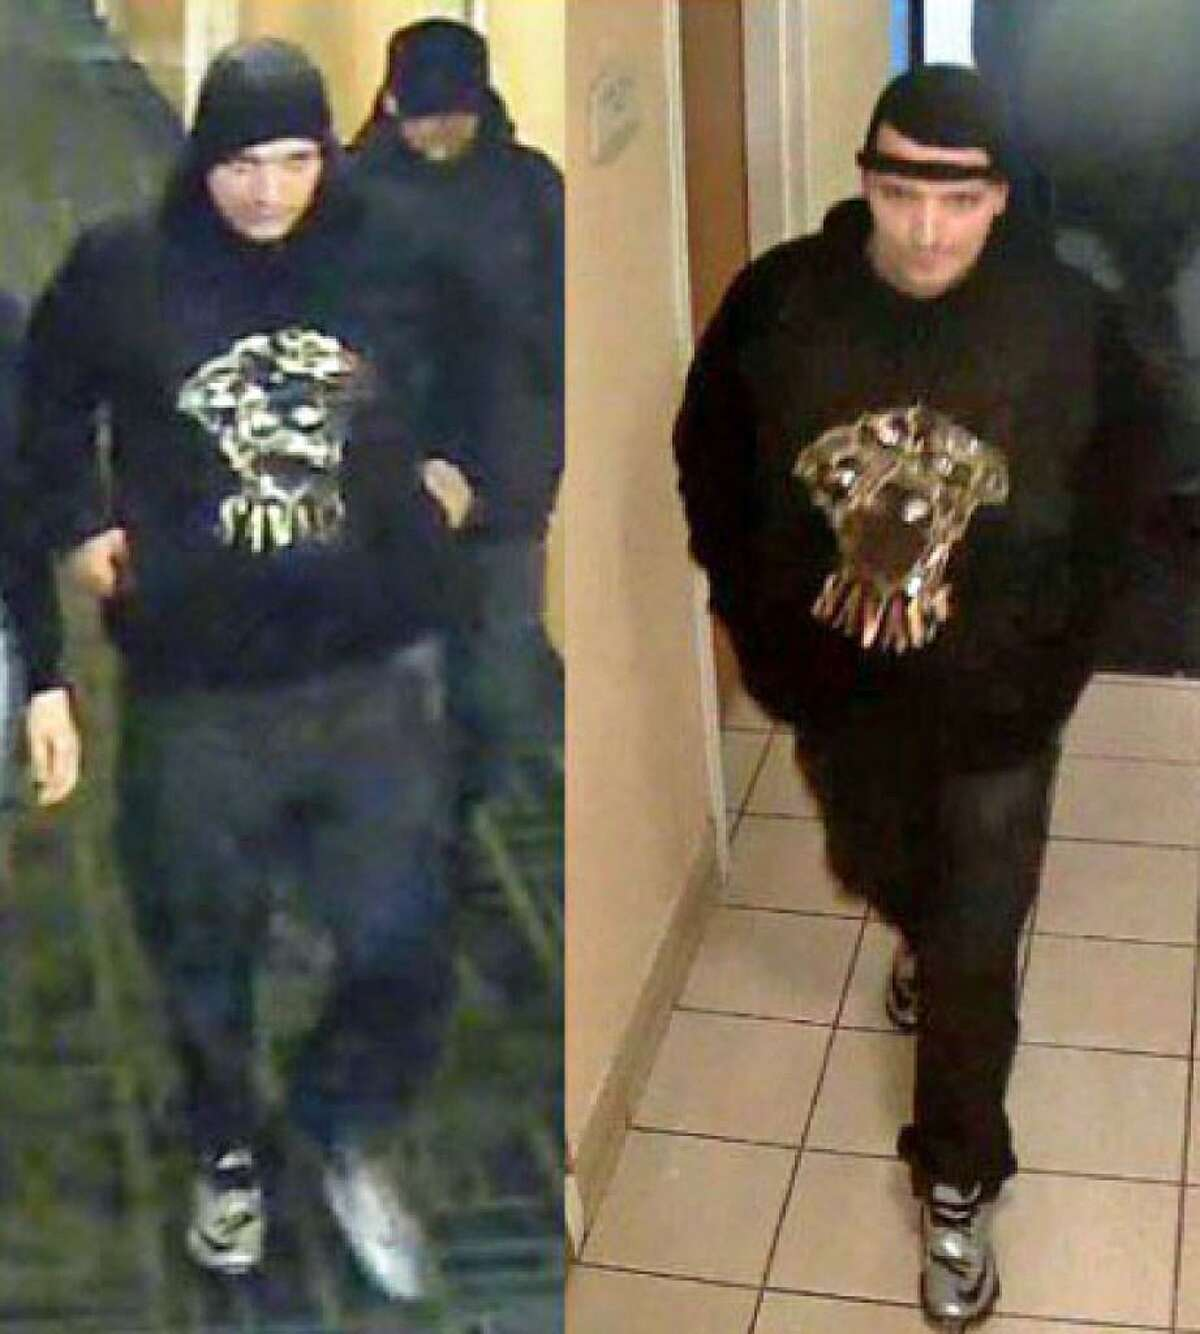 Milford police are looking for four suspects in the armed robbery of a man at Motel 6 early Wednesday morning April 12, 2017, who had $600 and his car keys taken.The robbery happened around 3:30 a.m. in what police said was a planned meeting of a woman, whom he only knows on a first name basis. On Thursday, April 27, 2017 police made an arrest in the case. Jacqueline Steck, 18, of Ellis Street, Milford, was taken into custody and charged with first-degree robbery, first-degree burglary, first-degree kidnapping with a firearm. criminal use of a firearm and first-degree larceny.